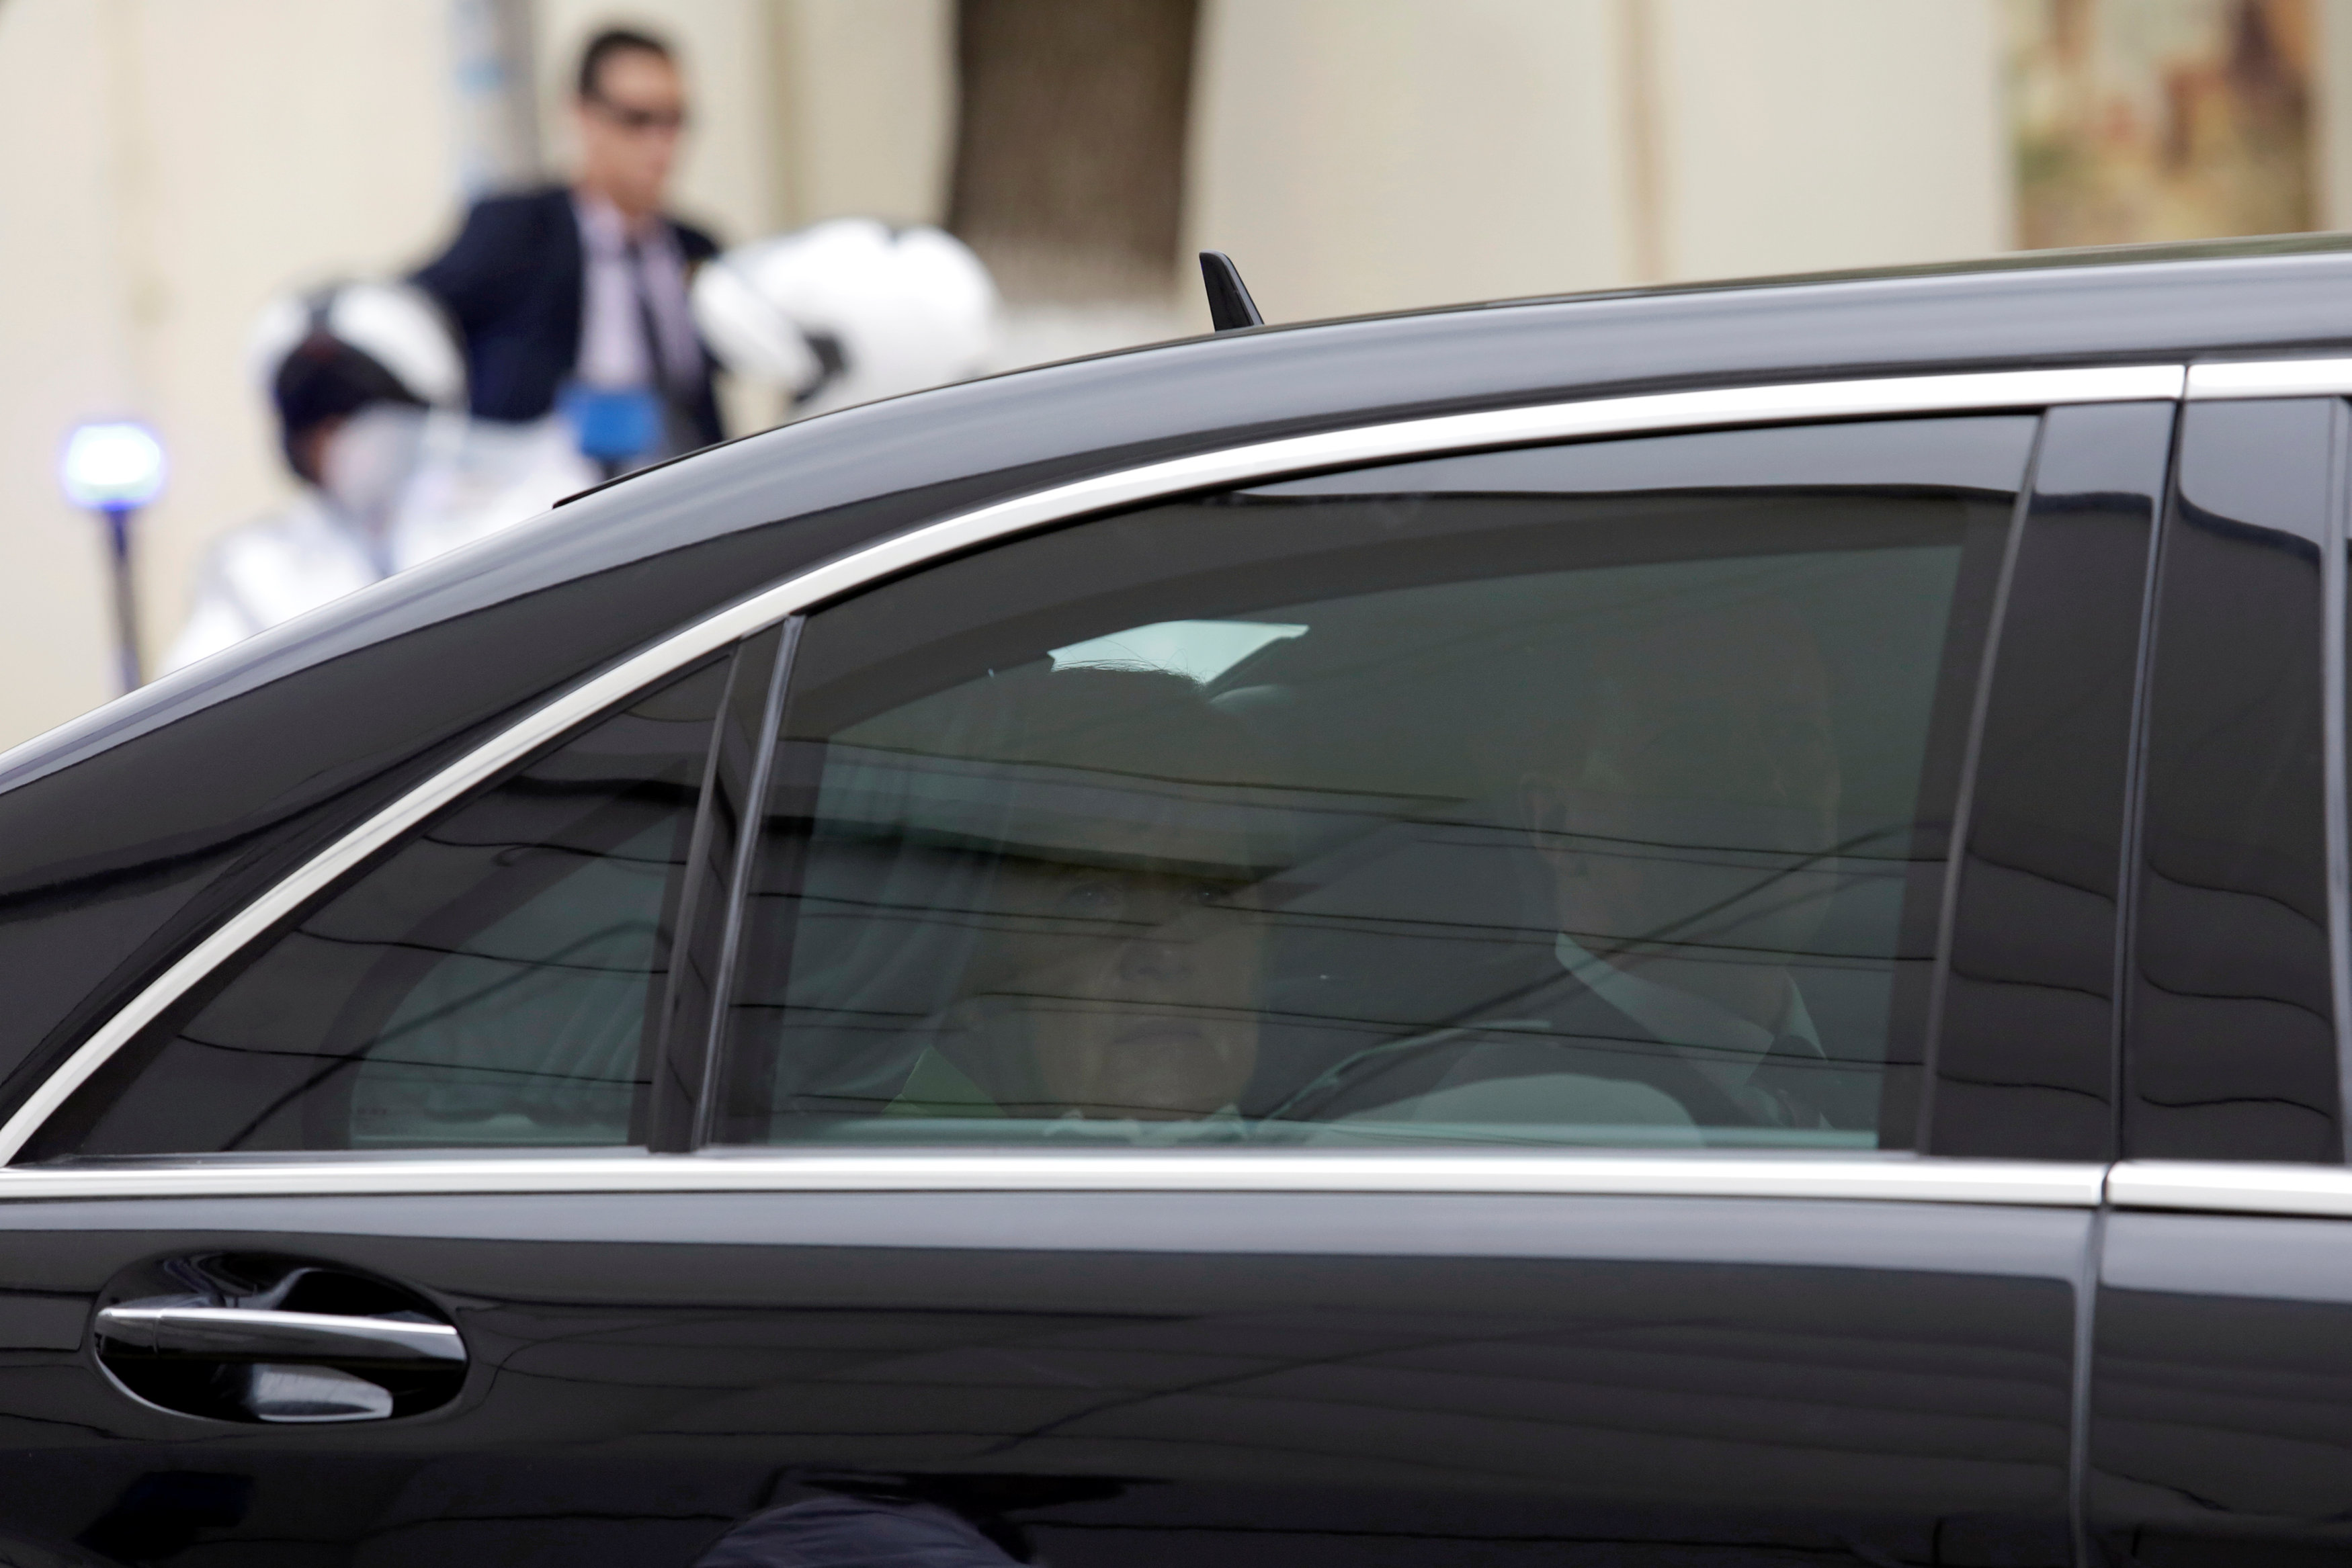 German Chancellor Angela Merkel is pictured inside a vehicle during her visit to Algiers